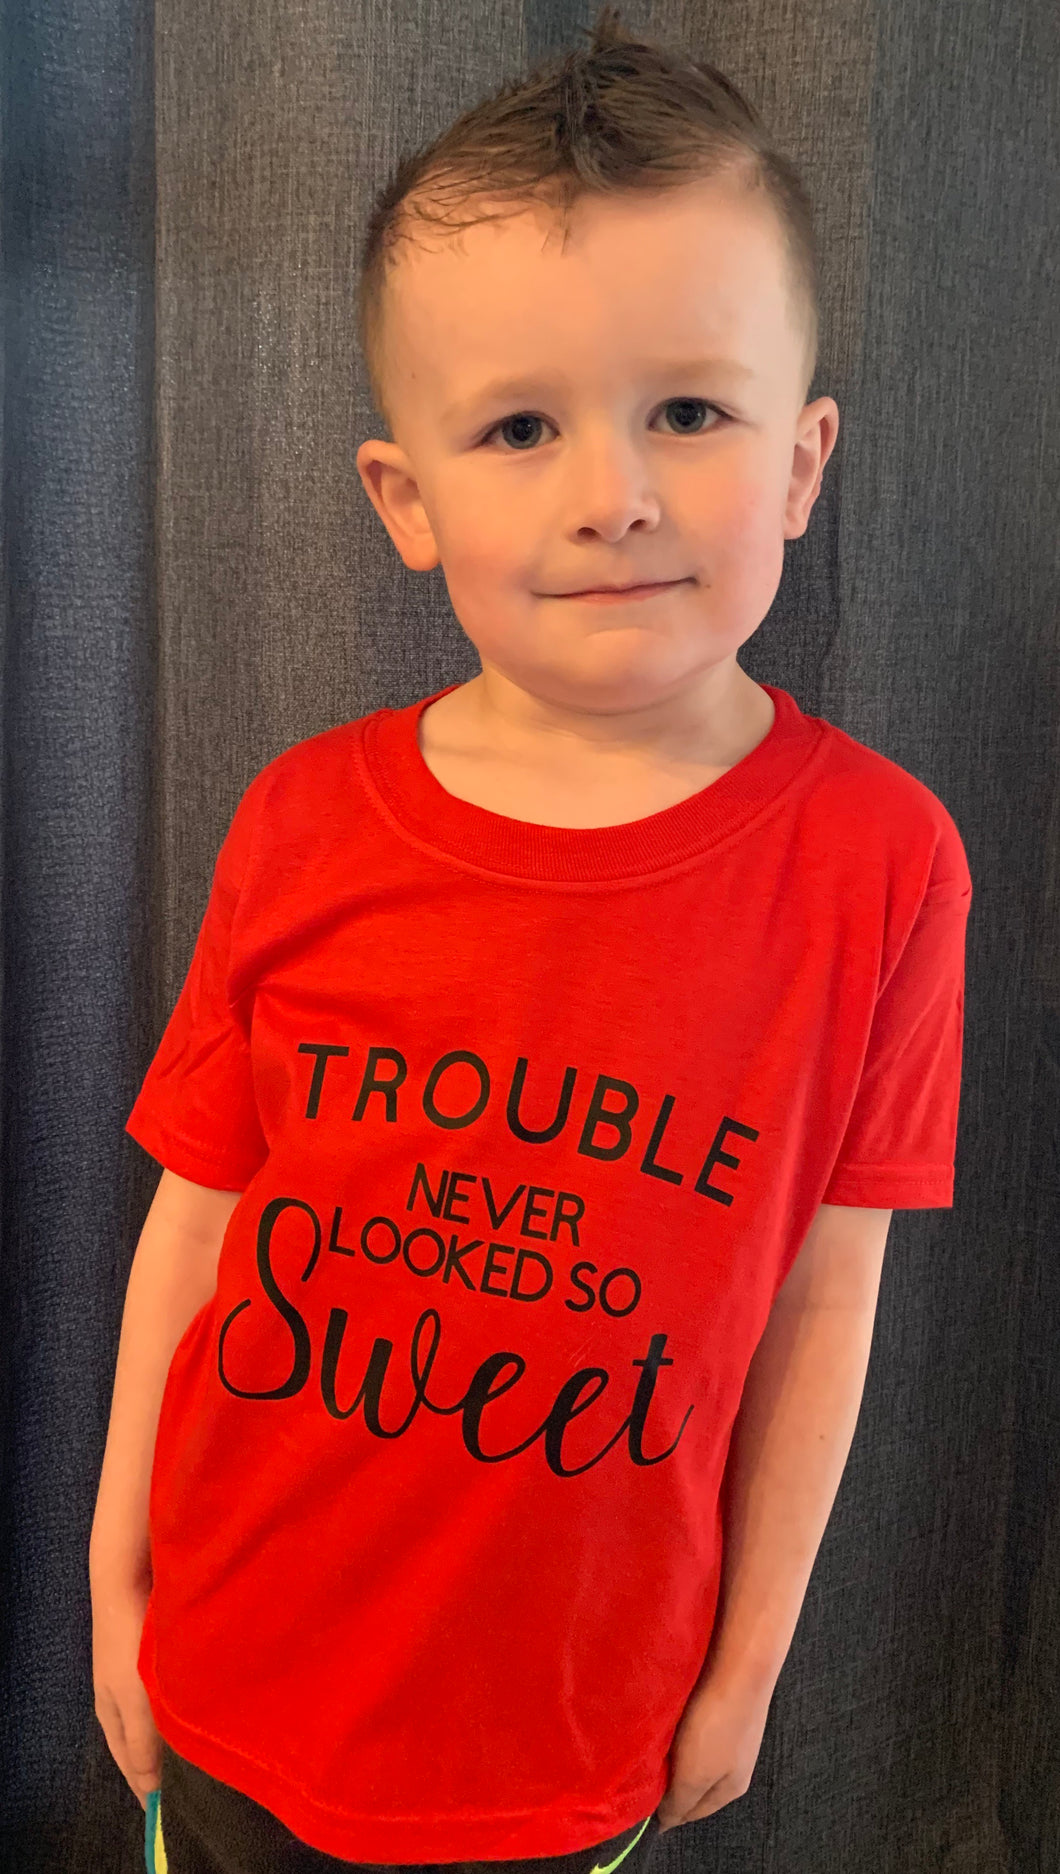 Trouble never looked so sweet. Funny kids or adult graphic tee. - Mavictoria Designs Hot Press Express